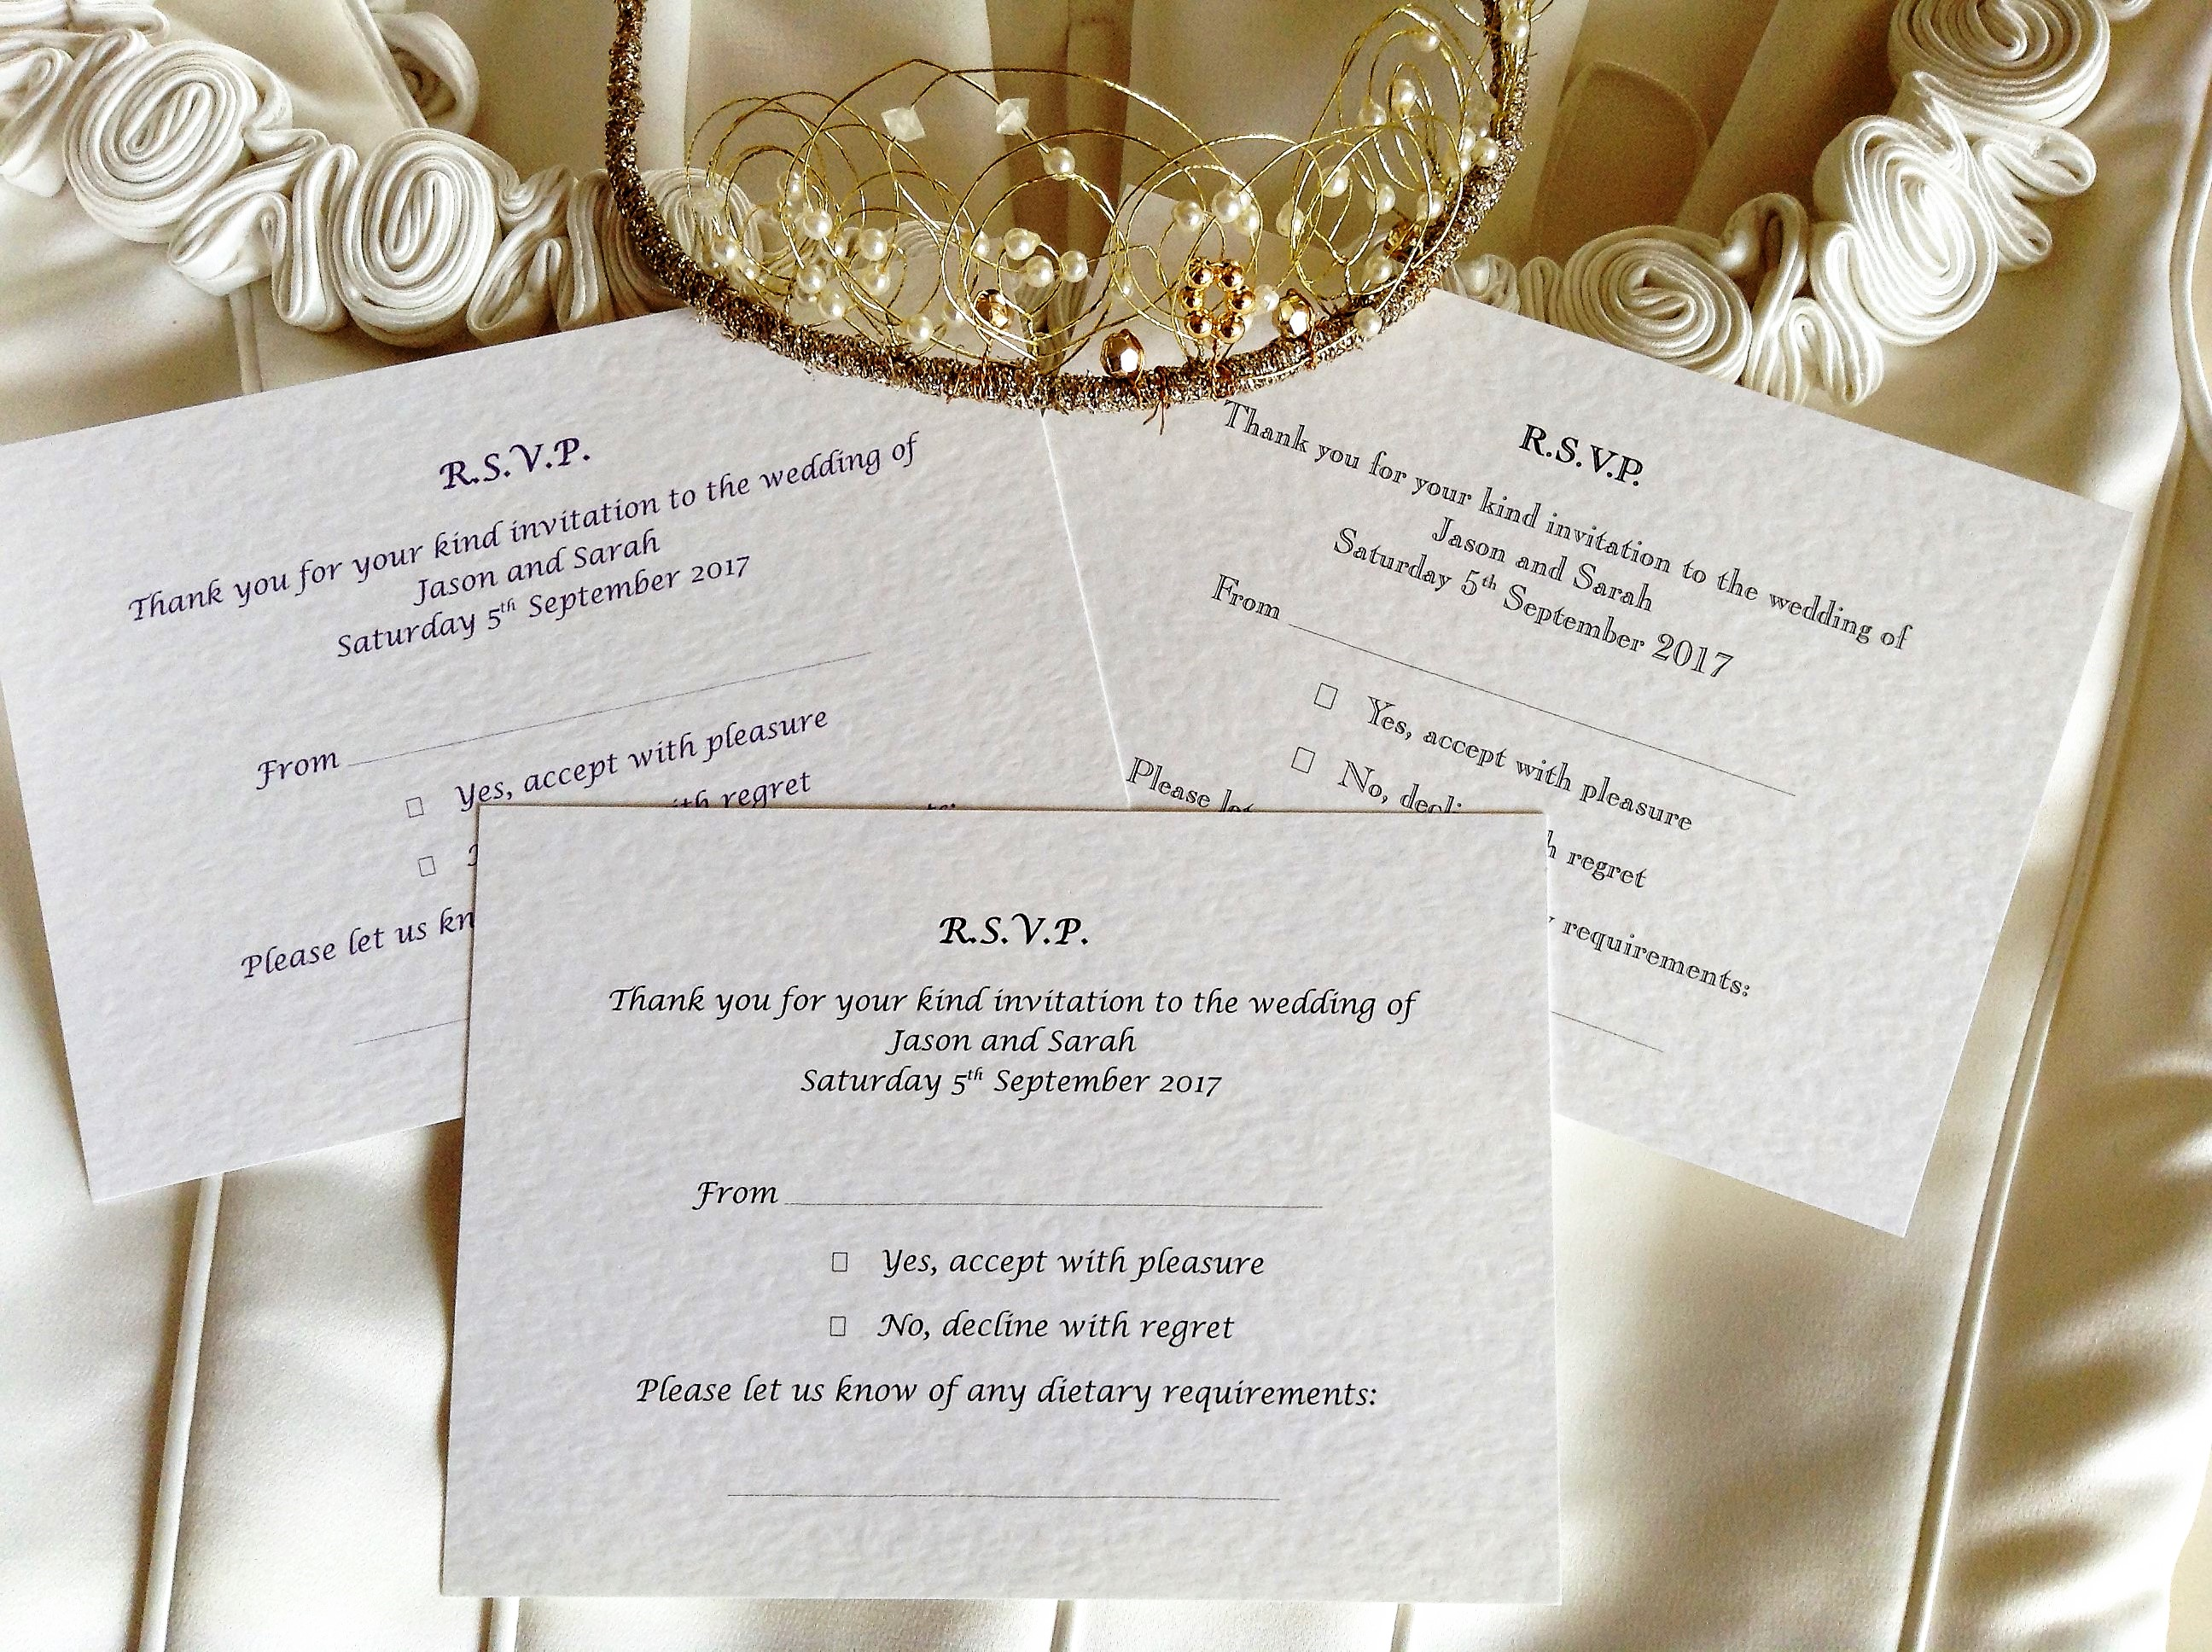 Wedding Invitations With Rsvp Postcards: Wedding Stationery